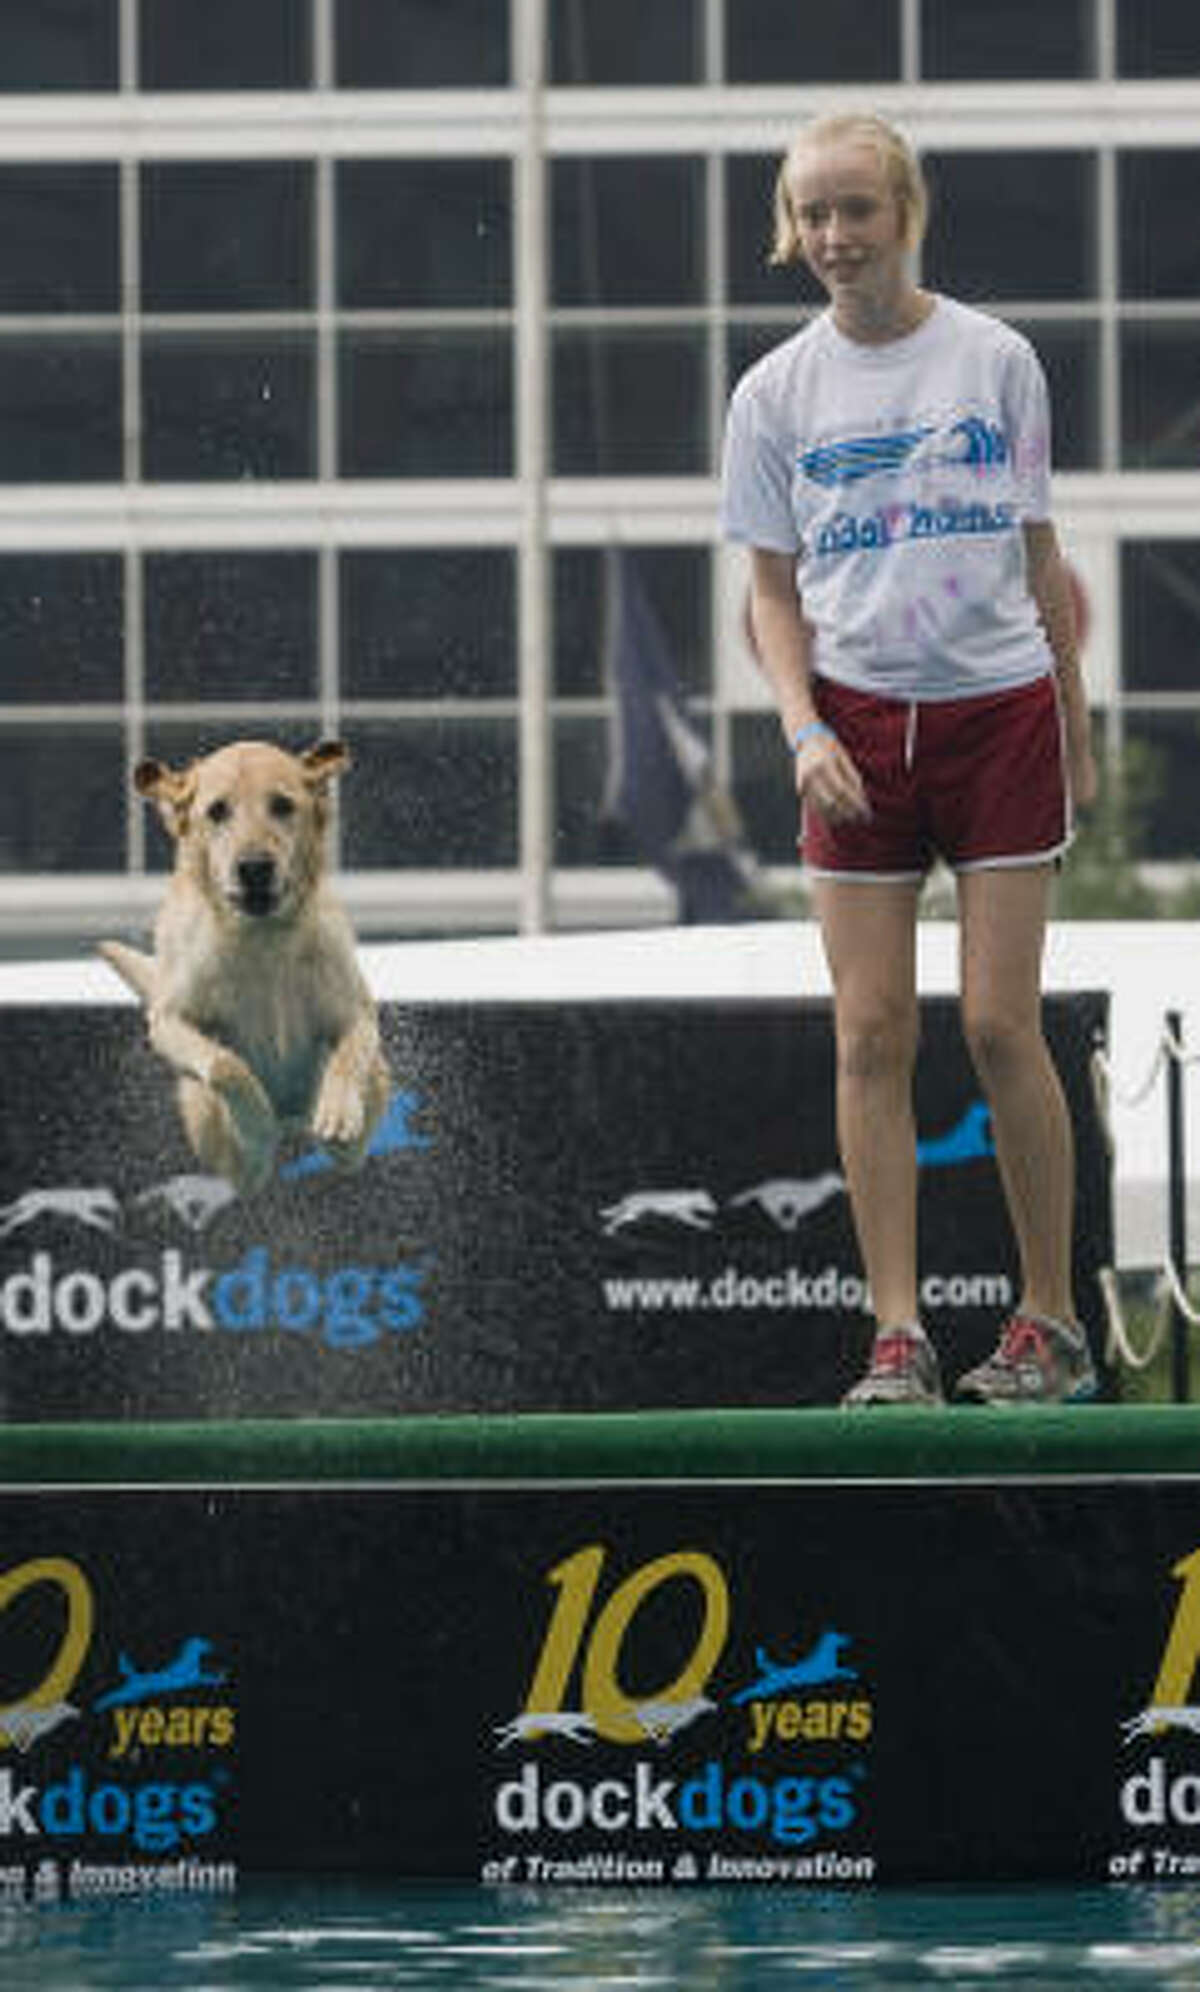 Jenny Sheeren watches as her dog, Sammy, races off the dock at the DockDogs event at Discovery Green Friday.